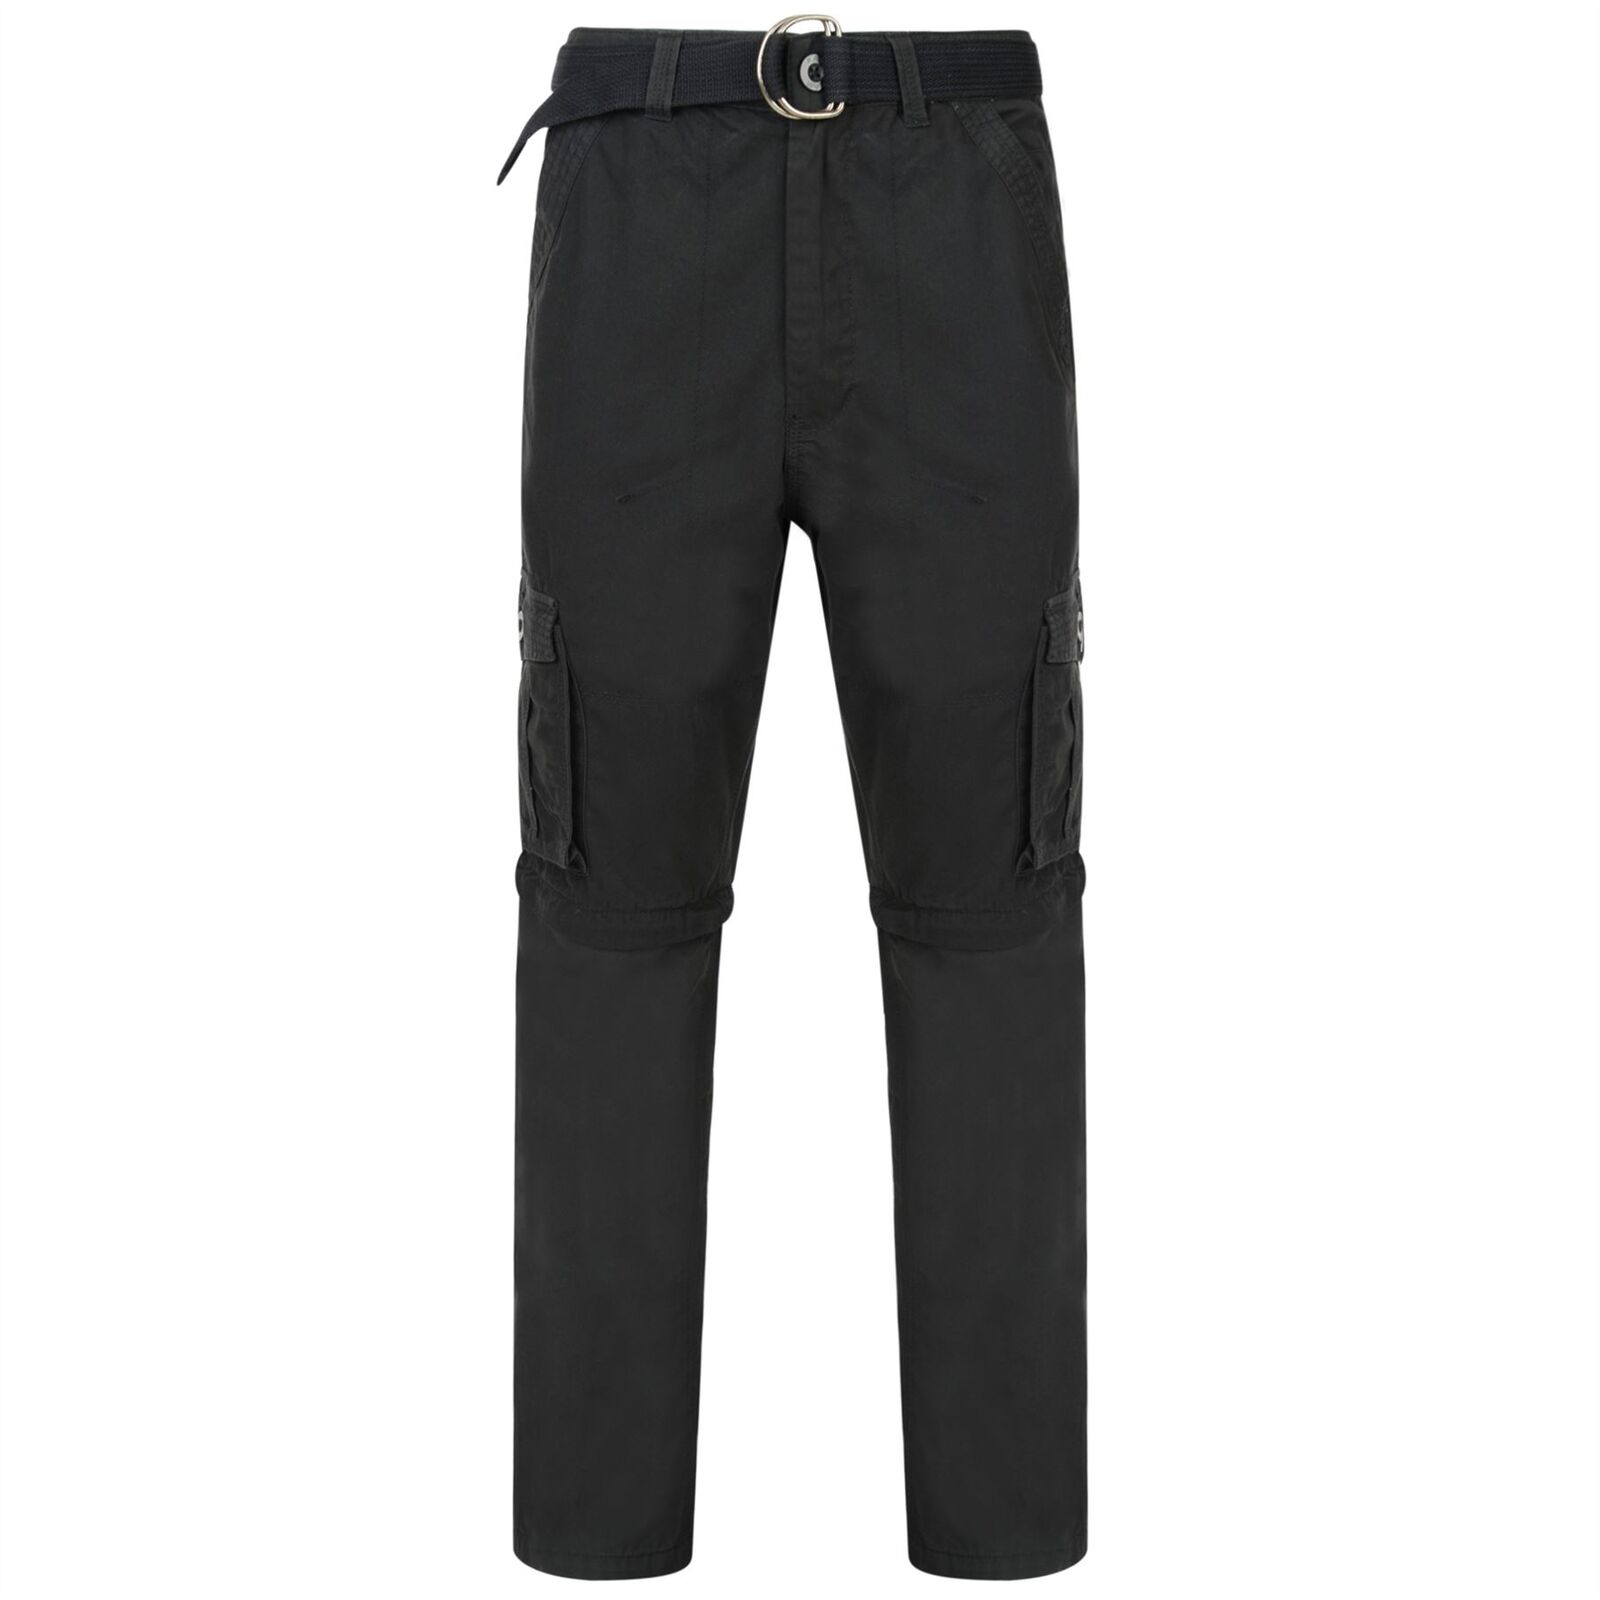 KAM Pure Cotton Zip Off Belted Cargo Trousers Pants From Waist 40 to 60